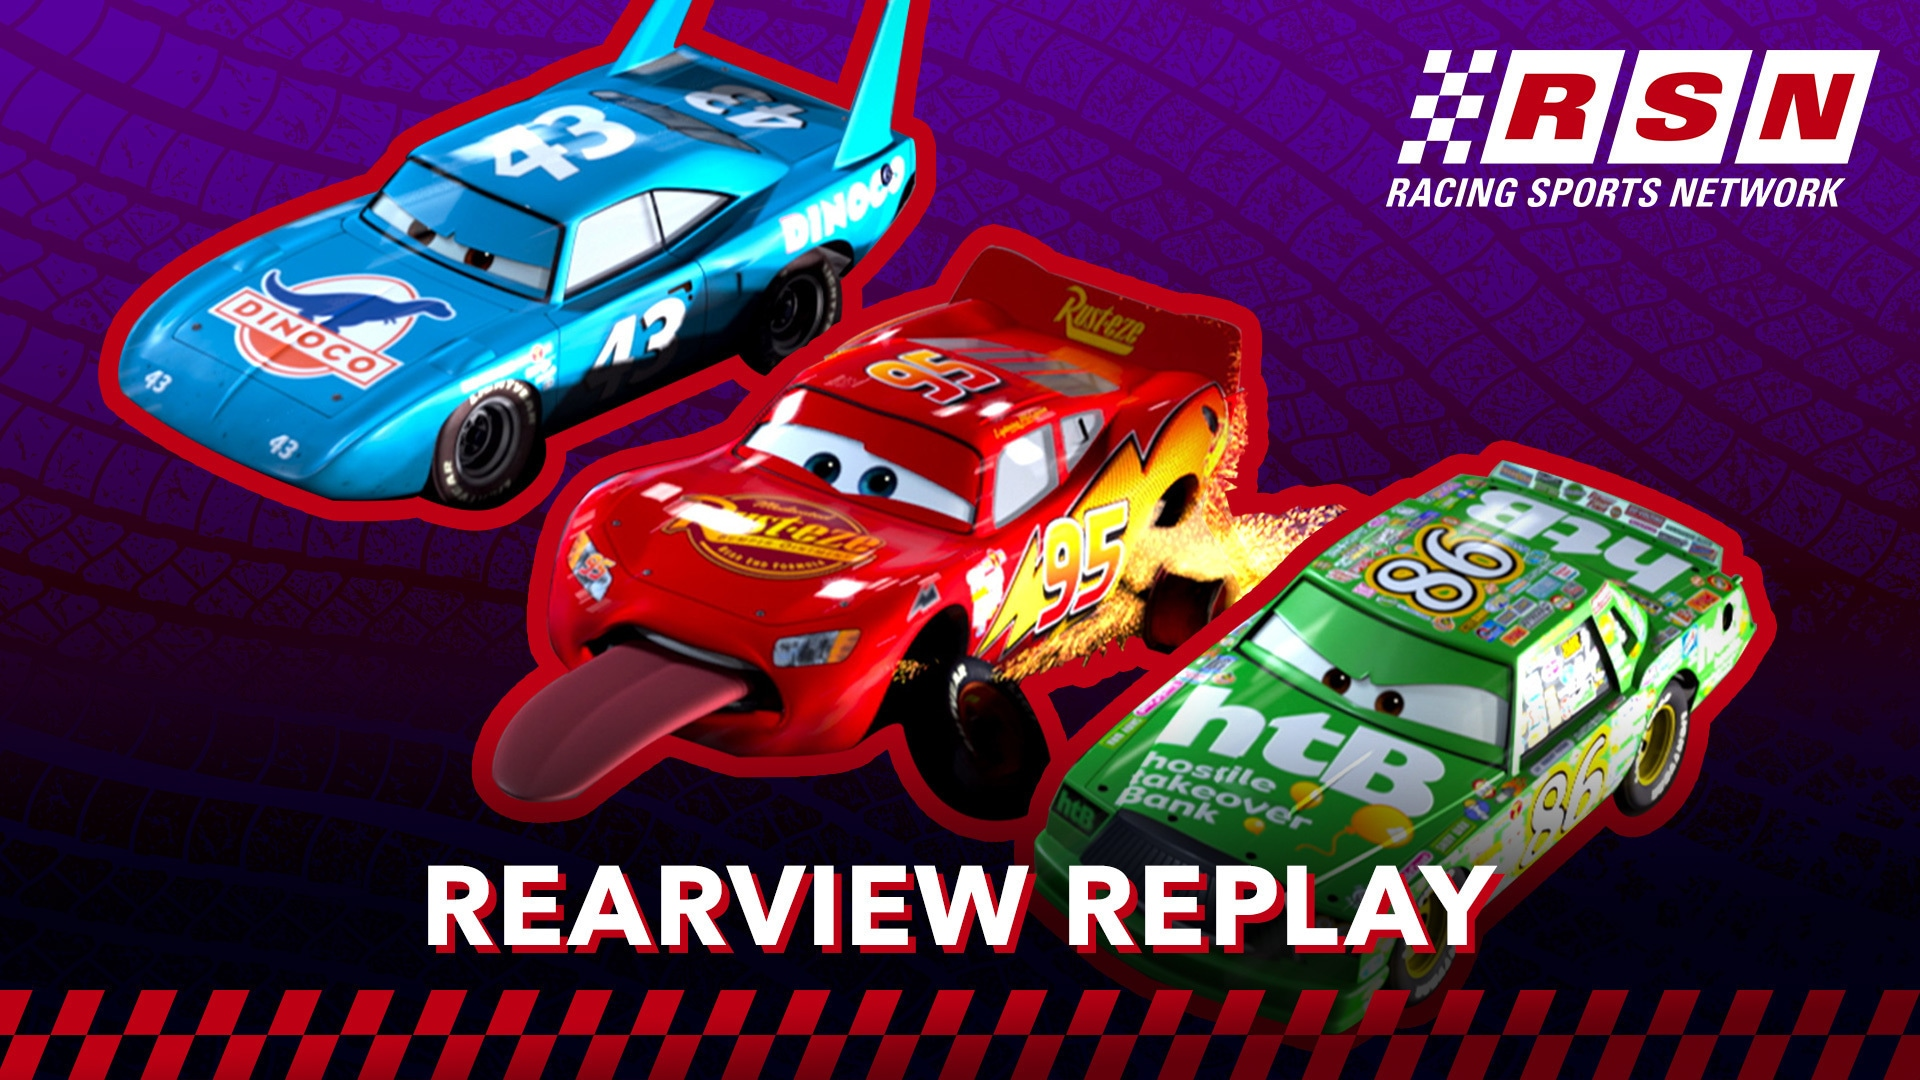 Rearview Replay: Tongue Tie | Racing Sports Network by Disney